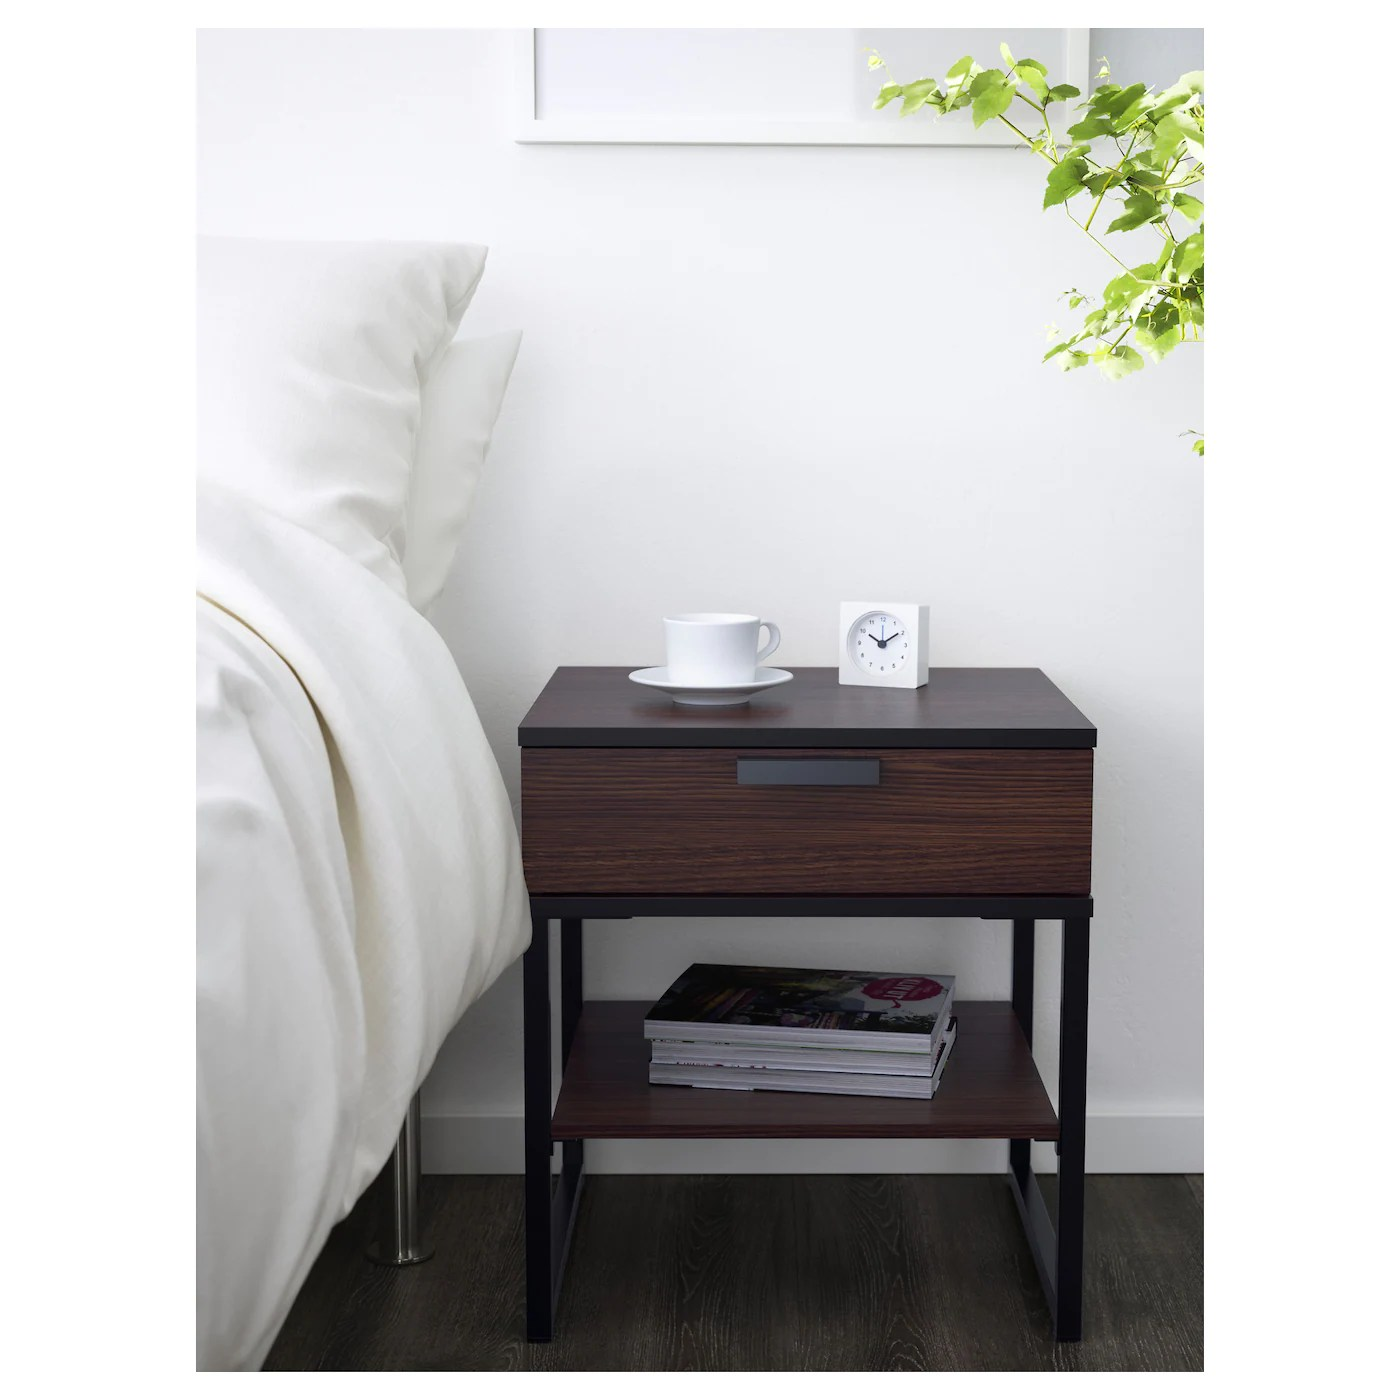 Trysil Bedside Table White Light Grey